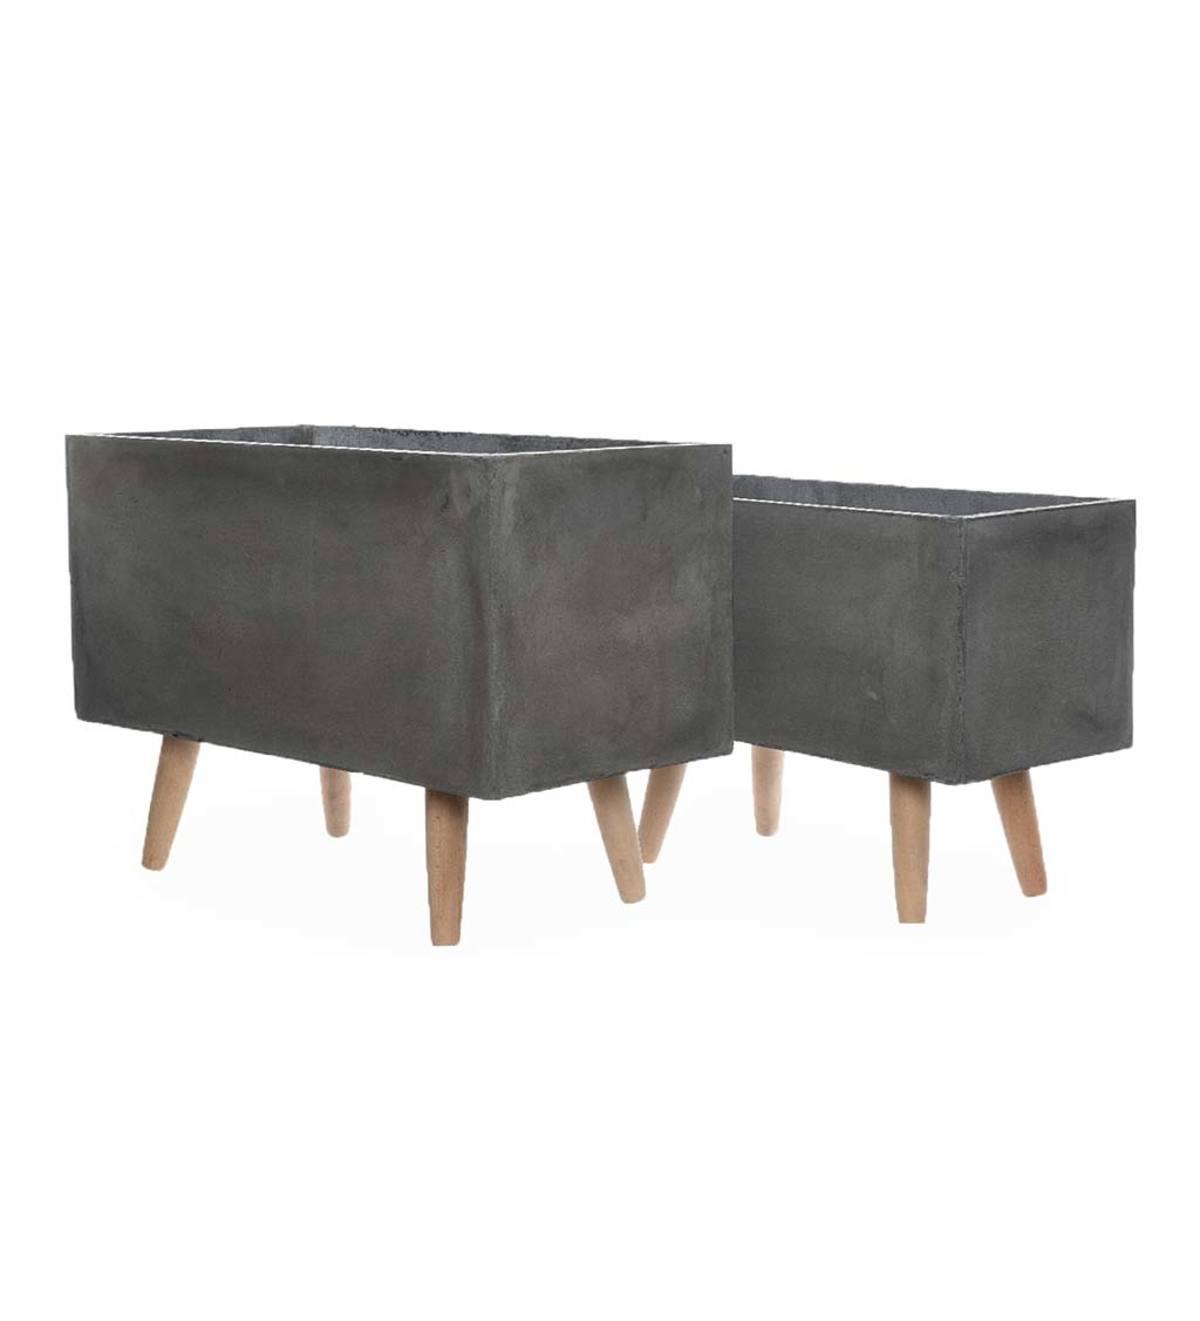 Clay Planters on Wooden Legs, Set of 2 - Dark Gray